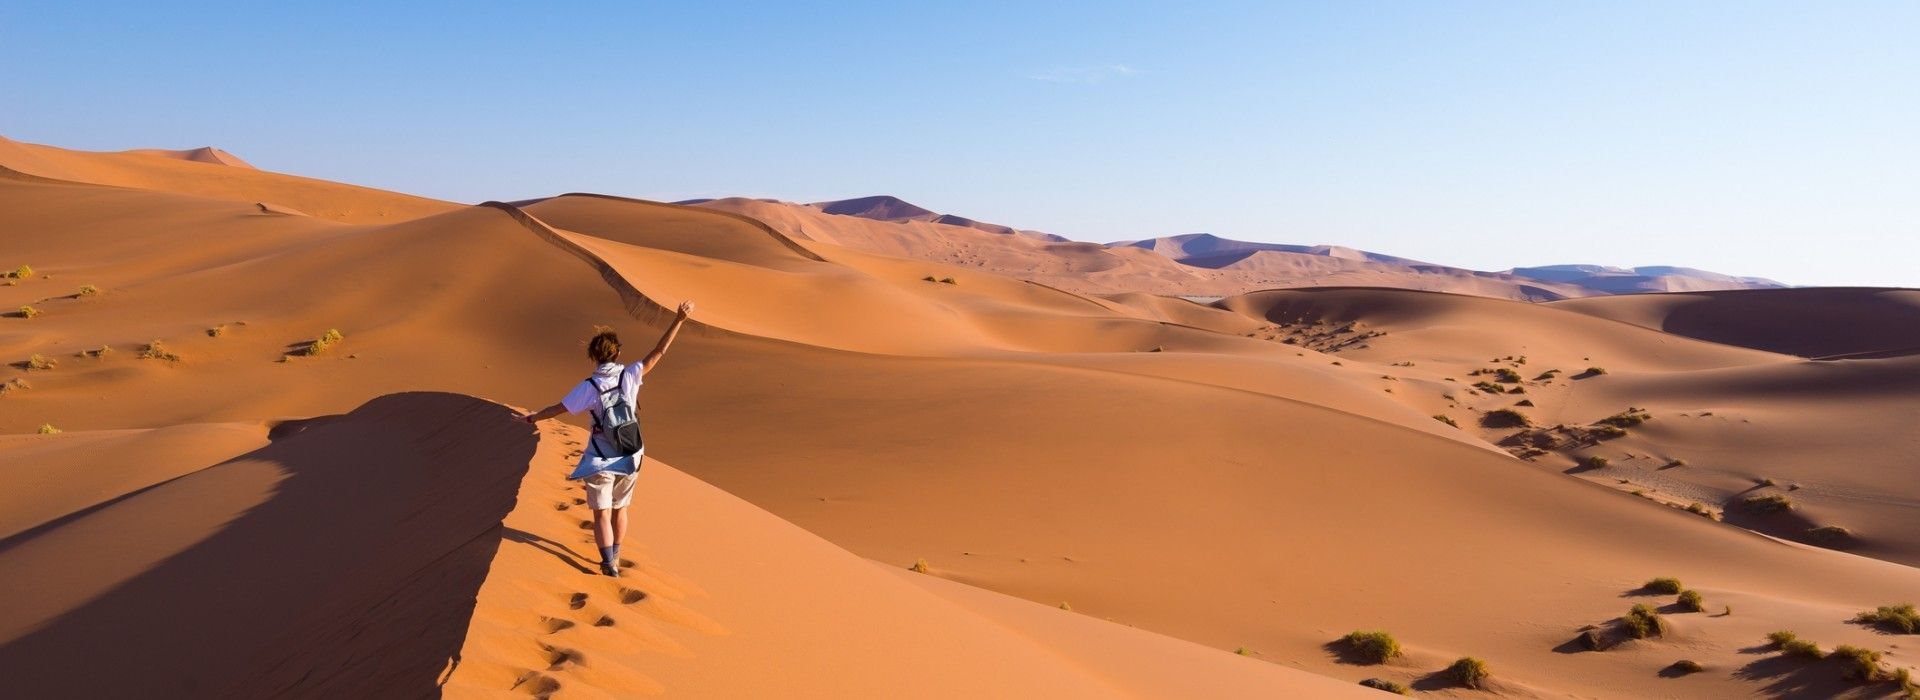 Namib Naukluft National Park Tours